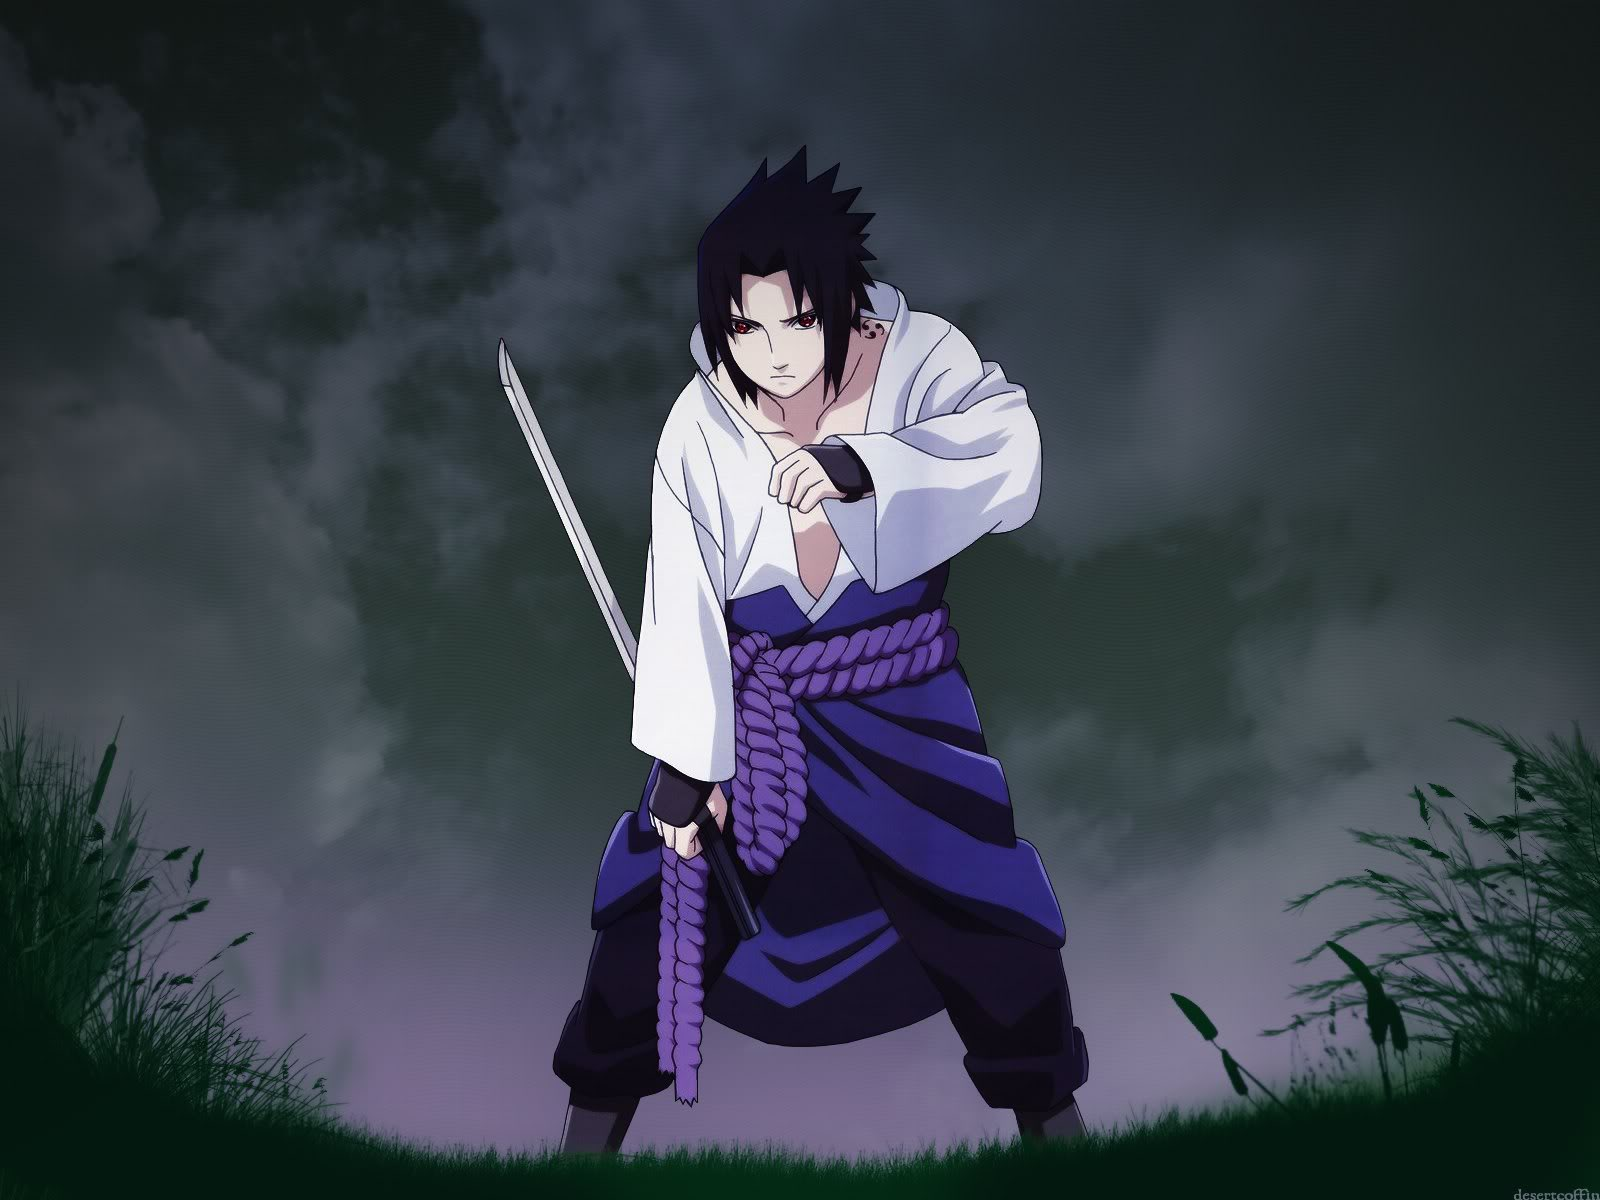 Free Download Sasuke Wallpaper Qygjxz 1600x1200 For Your